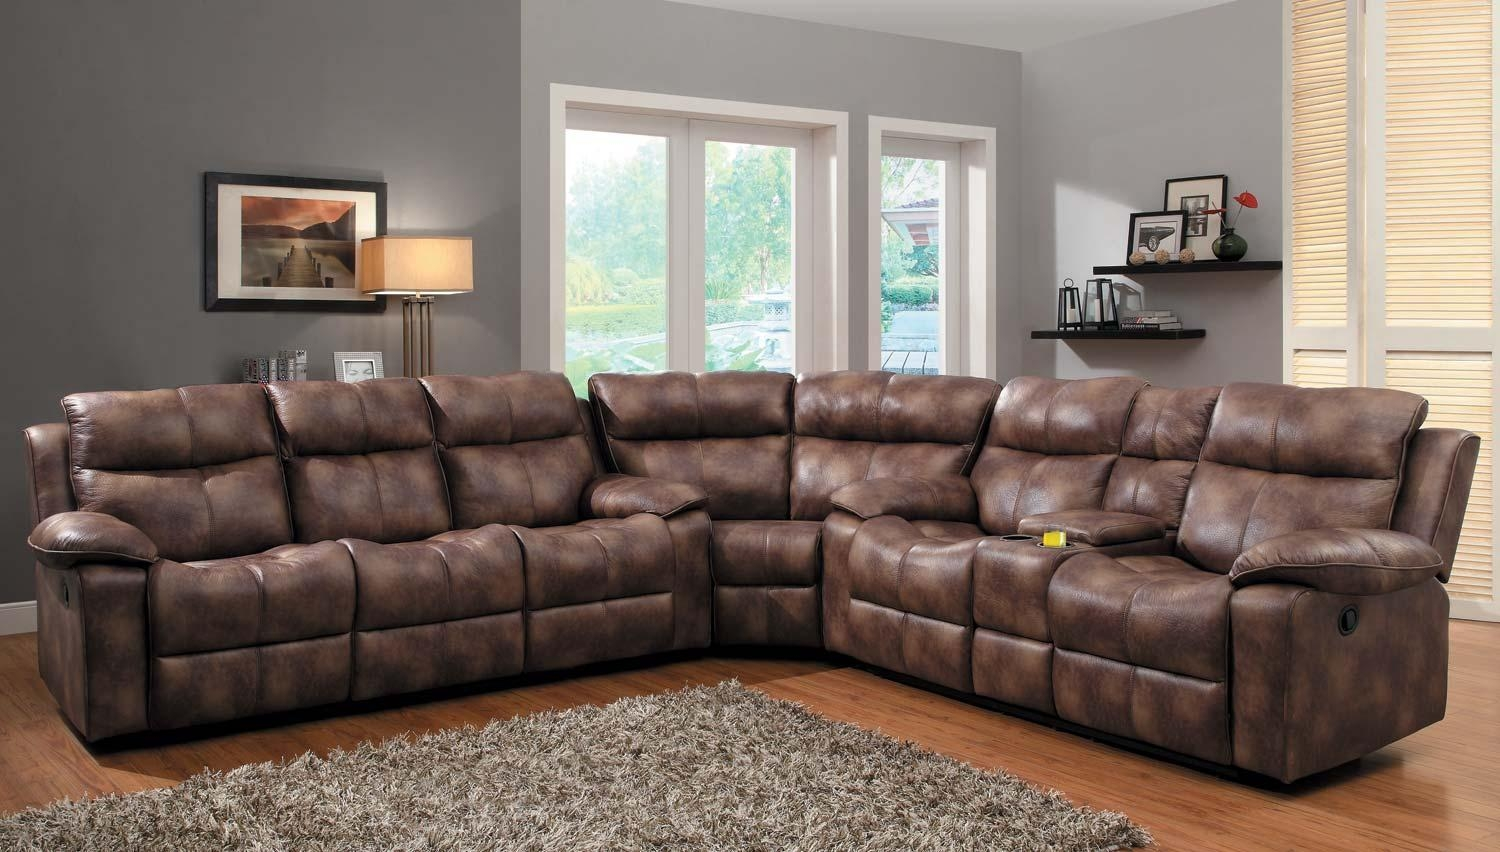 Furniture: Sectional Couches With Recliners | U Shaped Sectional Intended For U Shaped Reclining Sectional (Image 10 of 20)